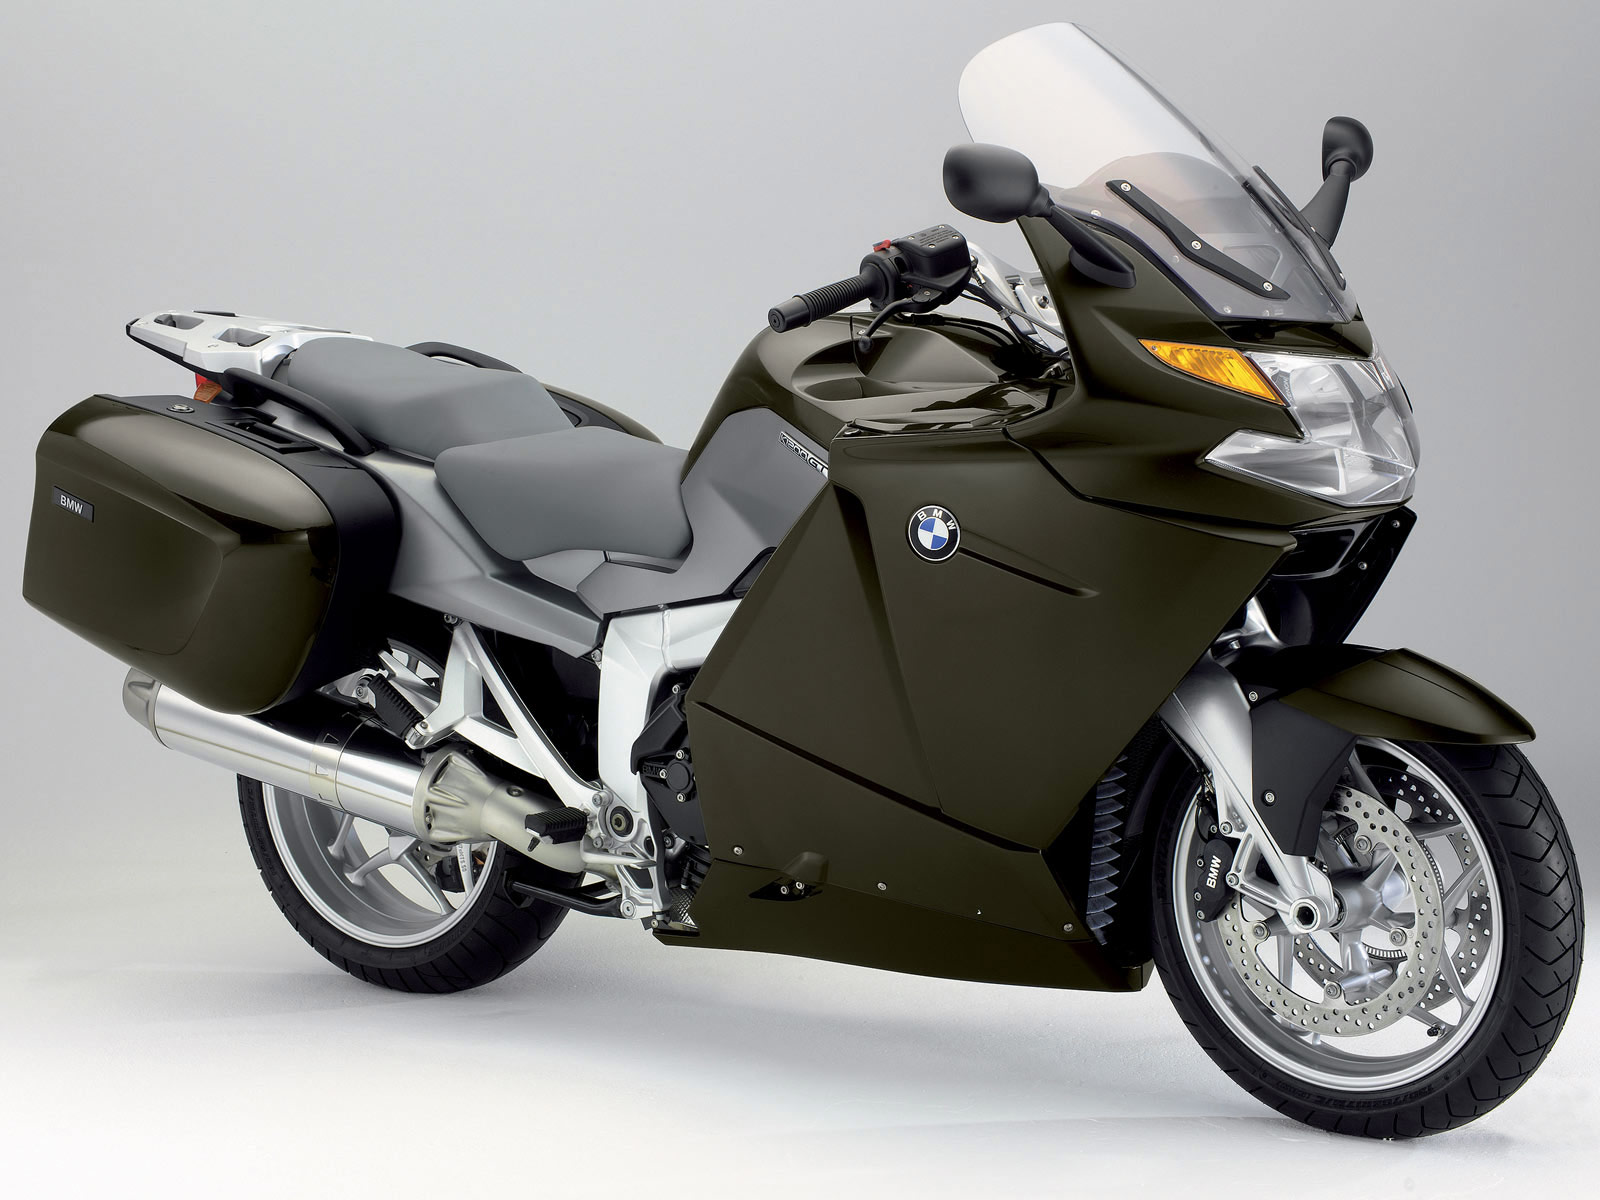 2006 bmw k 1200 gt motorcycle accident lawyers info. Black Bedroom Furniture Sets. Home Design Ideas